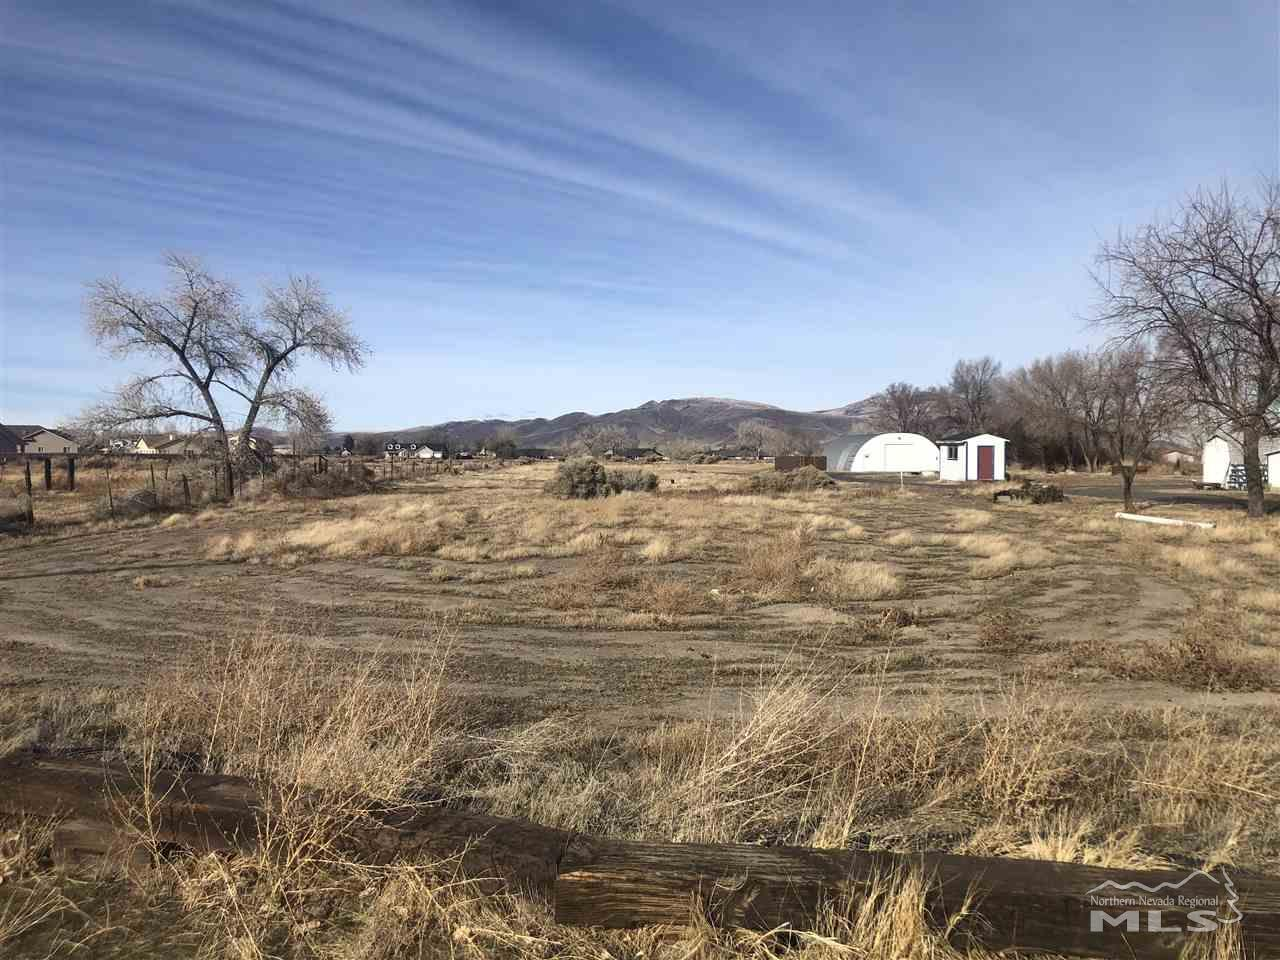 1240-1250 Farm District Road #021-311-21 and 021-311-22, Fernley, NV 89408 - Fernley, NV real estate listing